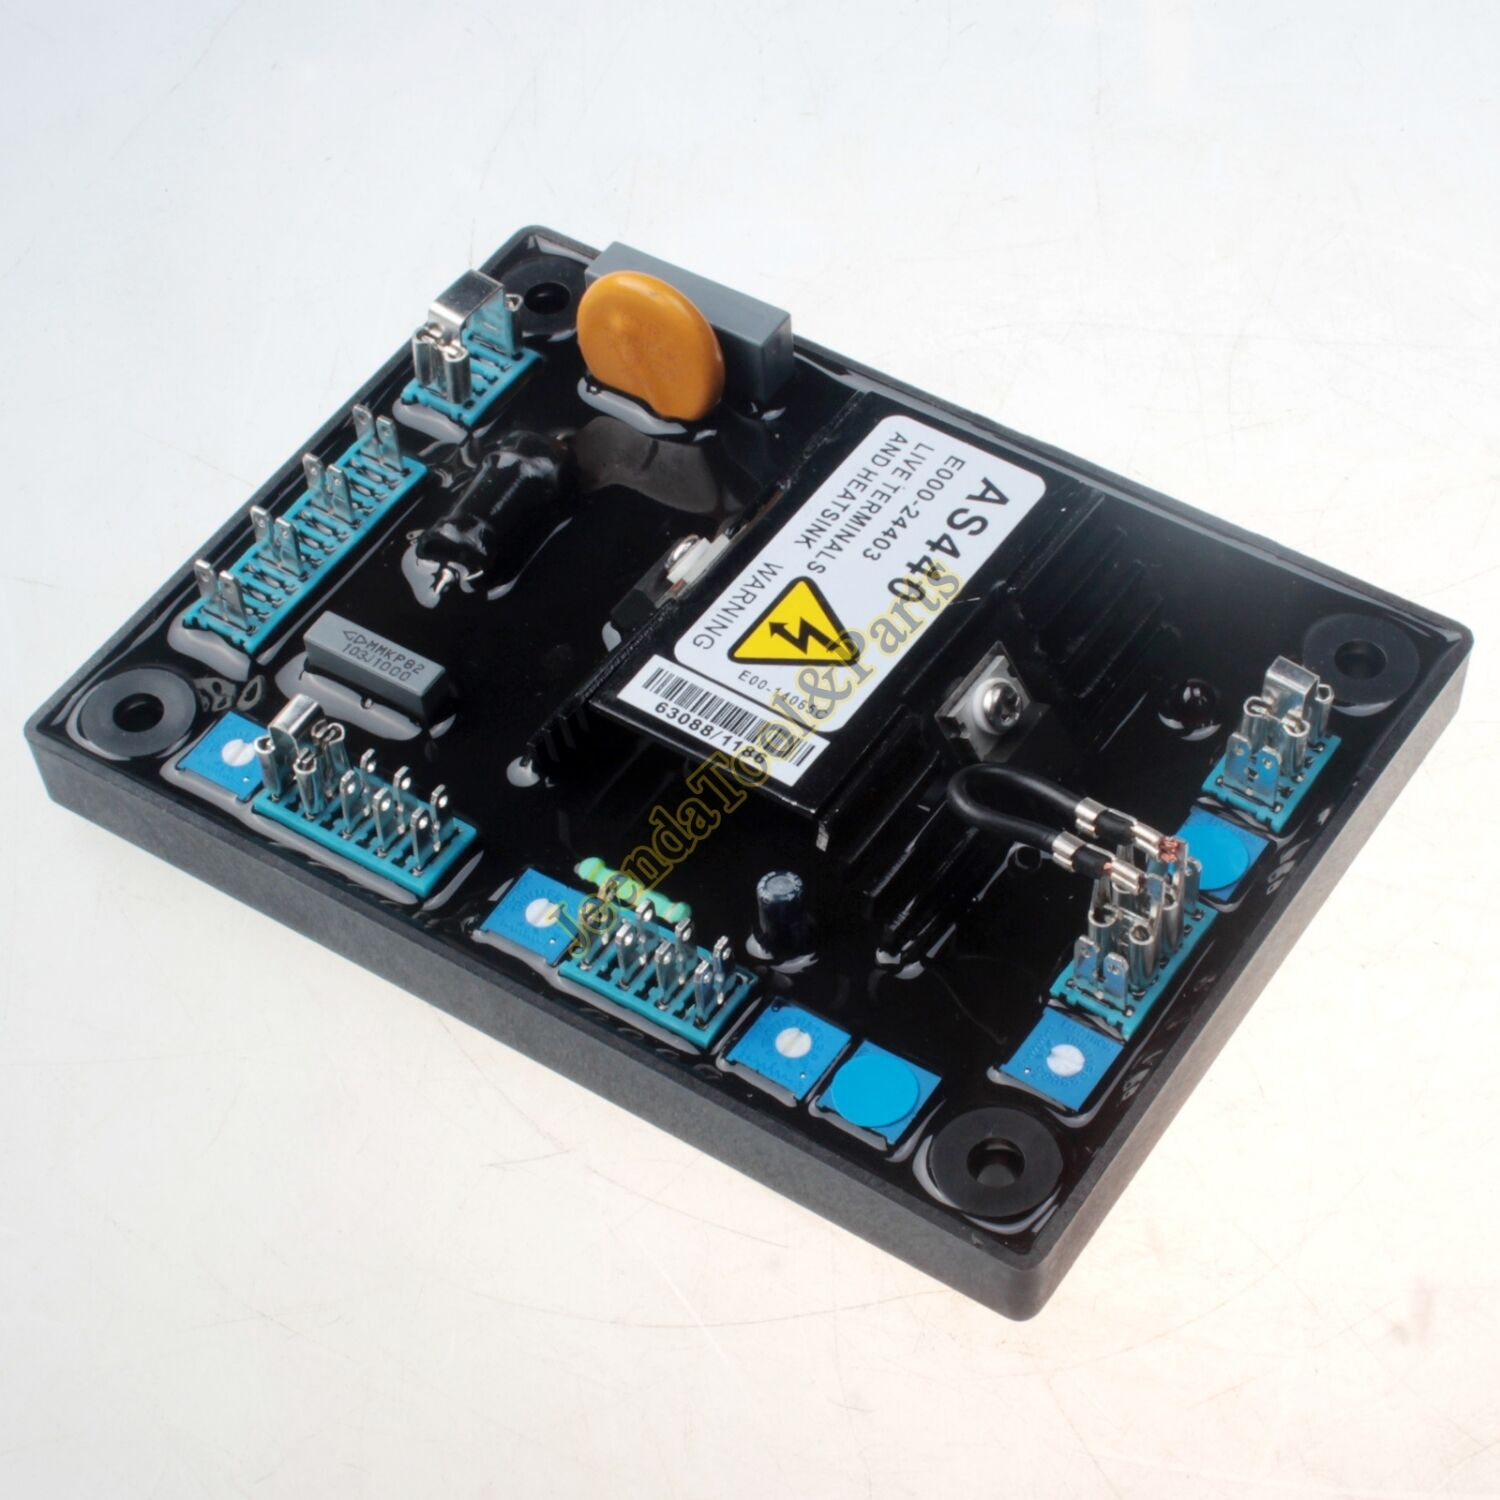 New For Stamford Generator Genset Avr As440 Automatic Voltage Wiring Diagram 8 Of 10 Regulator Module 9